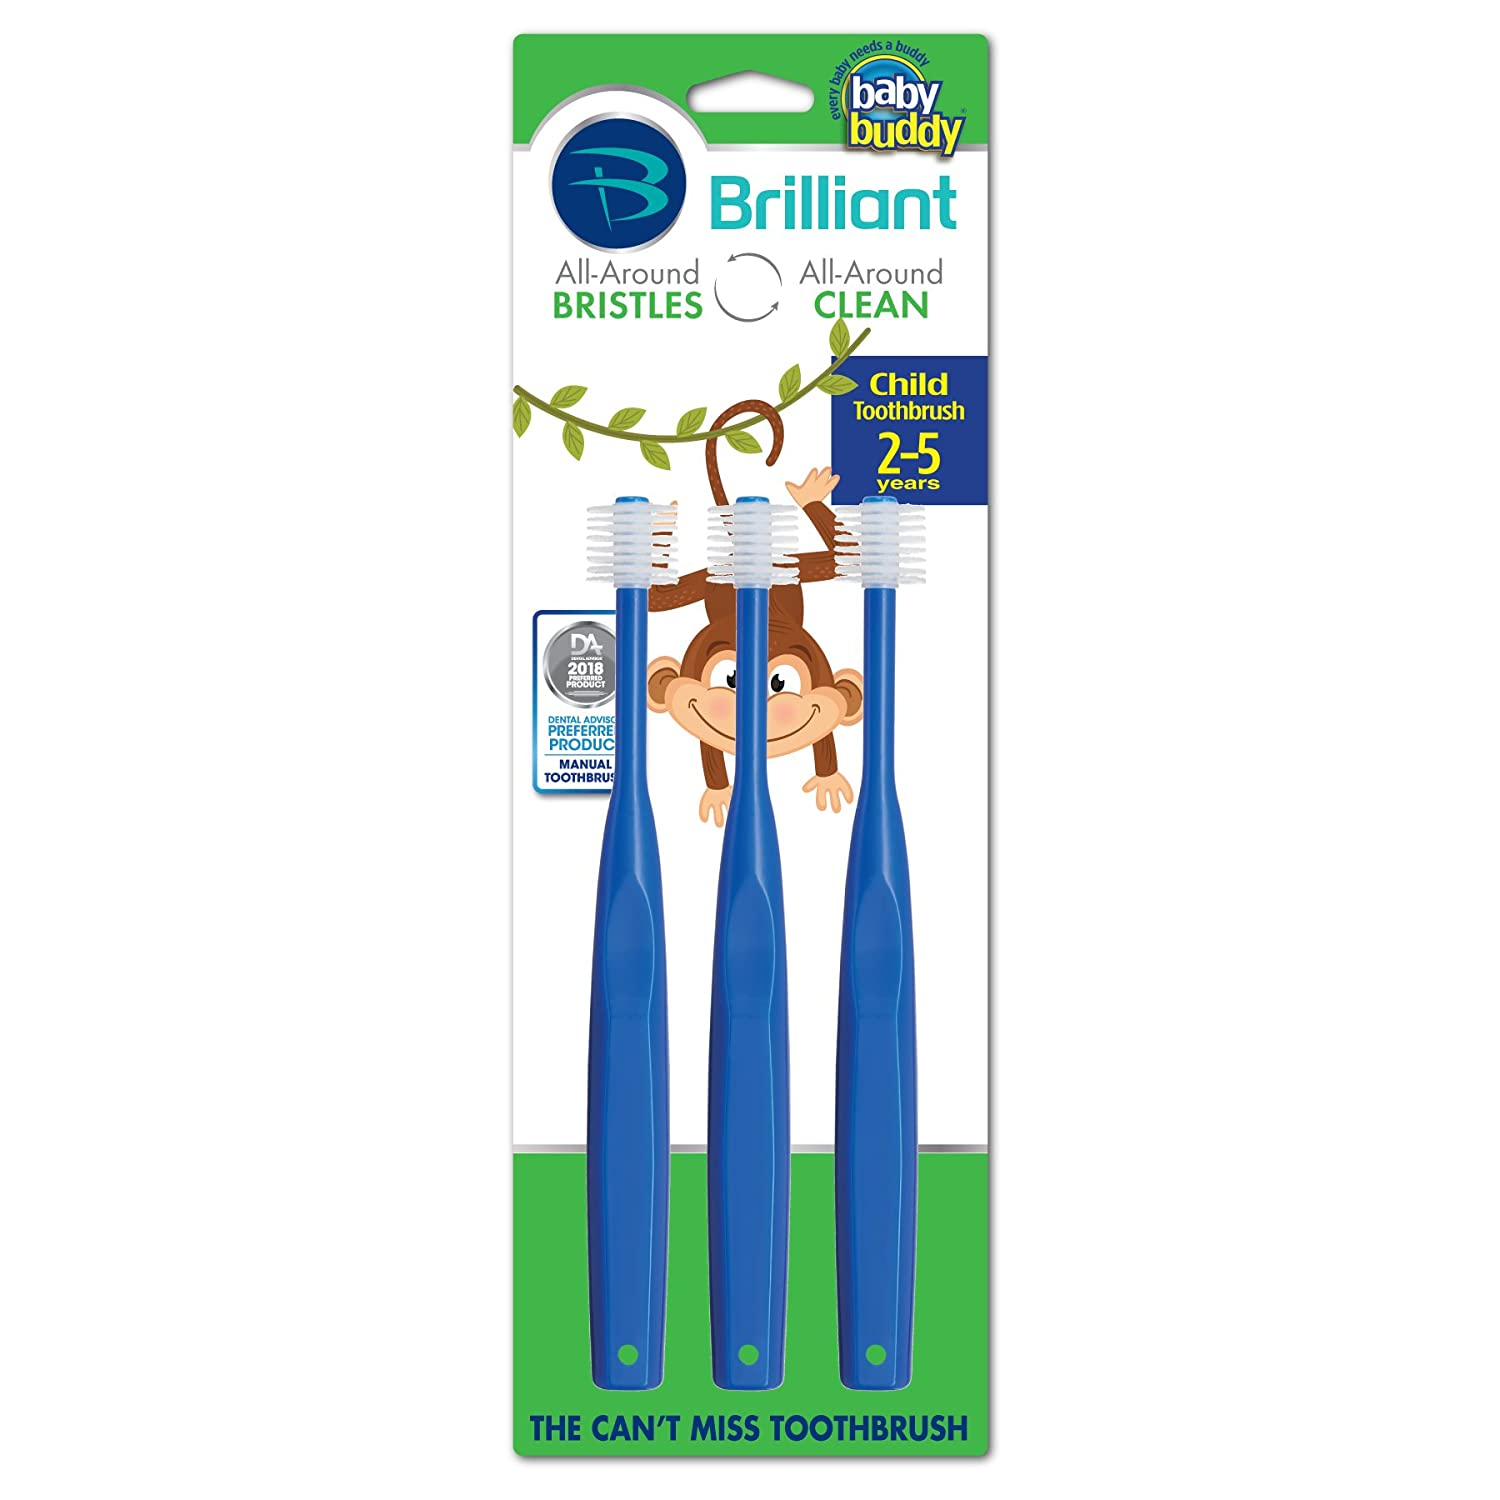 Brilliant Child Toothbrush by Baby Buddy - For Ages 2+ Years, BPA Free Super-Fine Micro Bristles Clean All-Around Mouth, Kids Love Them, Royal Blue, 3 Count Royal Blue 03575RY